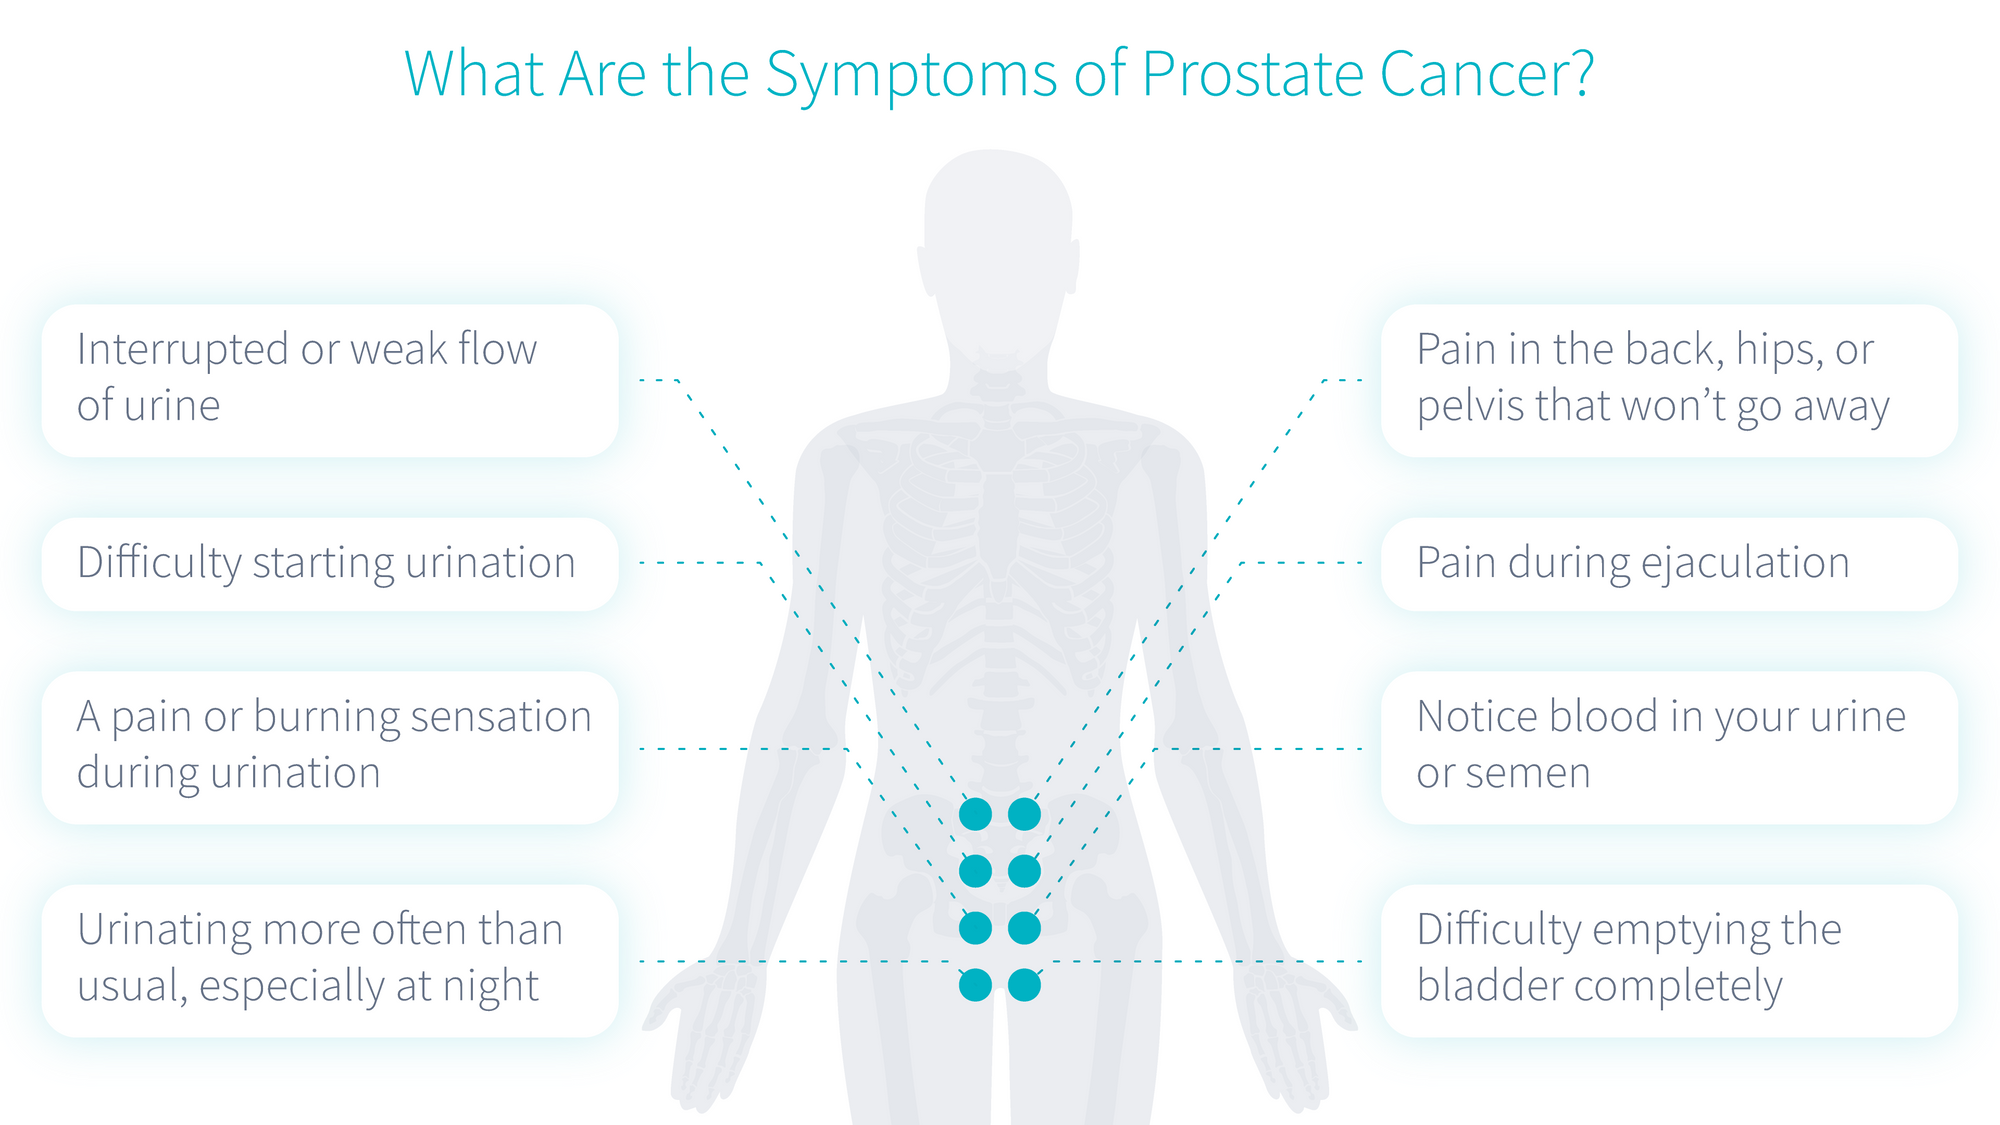 symptoms-of-prostate-cancer-letsgetchecked-illustration-